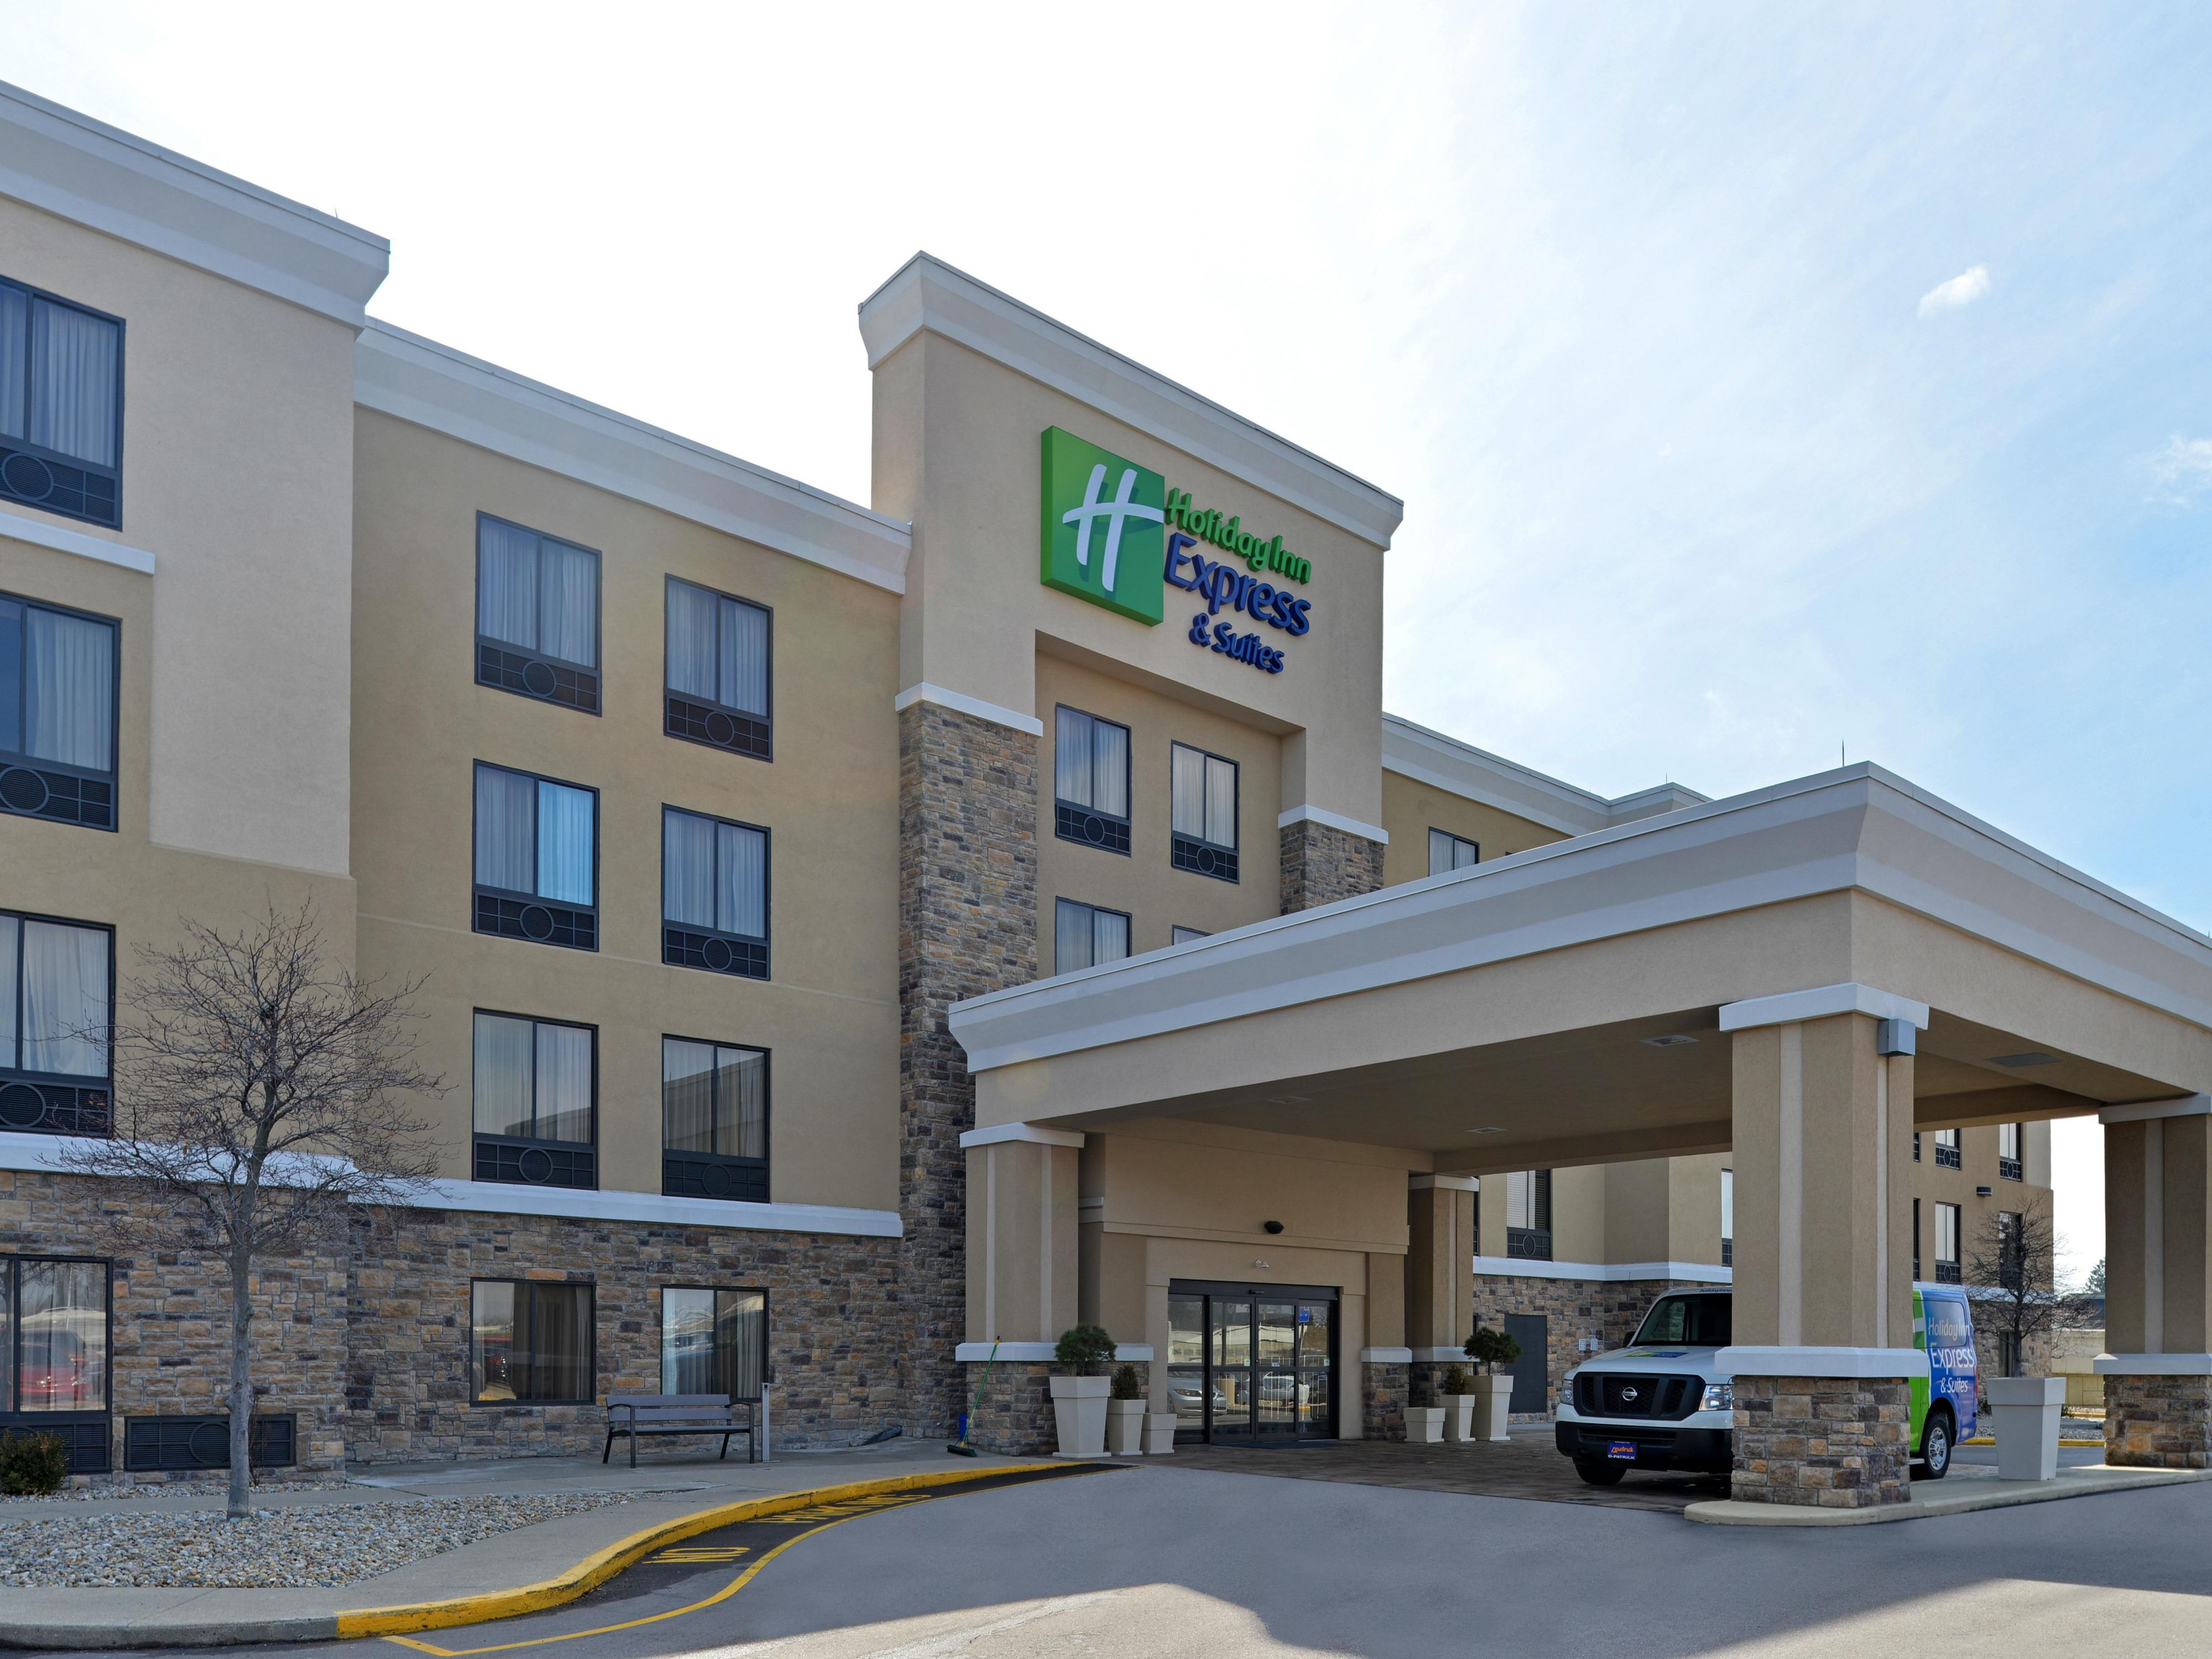 Things To Do In Indianapolis Near Holiday Inn Express Suites W Airport Area Hotel